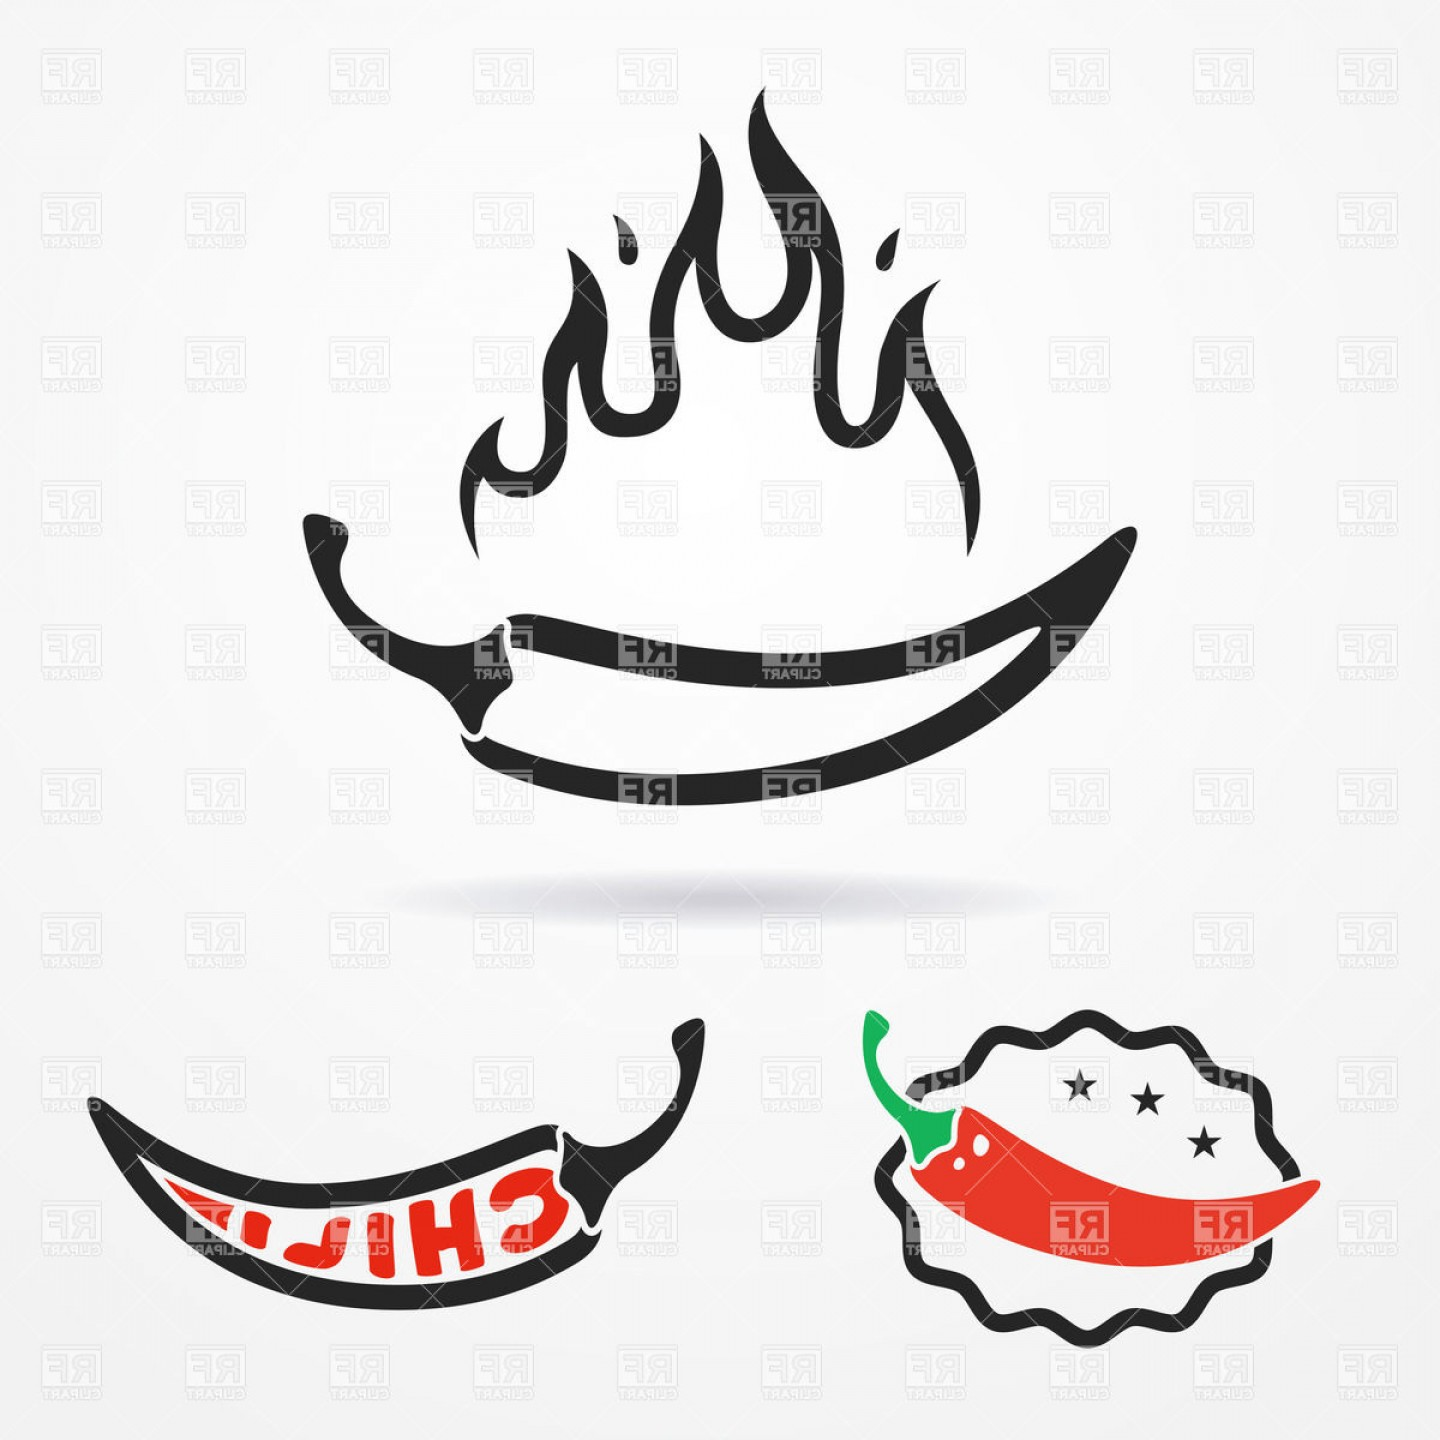 Chili with flame clipart svg download Flat Emblems With Red Chili Peppers And Flame Vector Clipart ... svg download